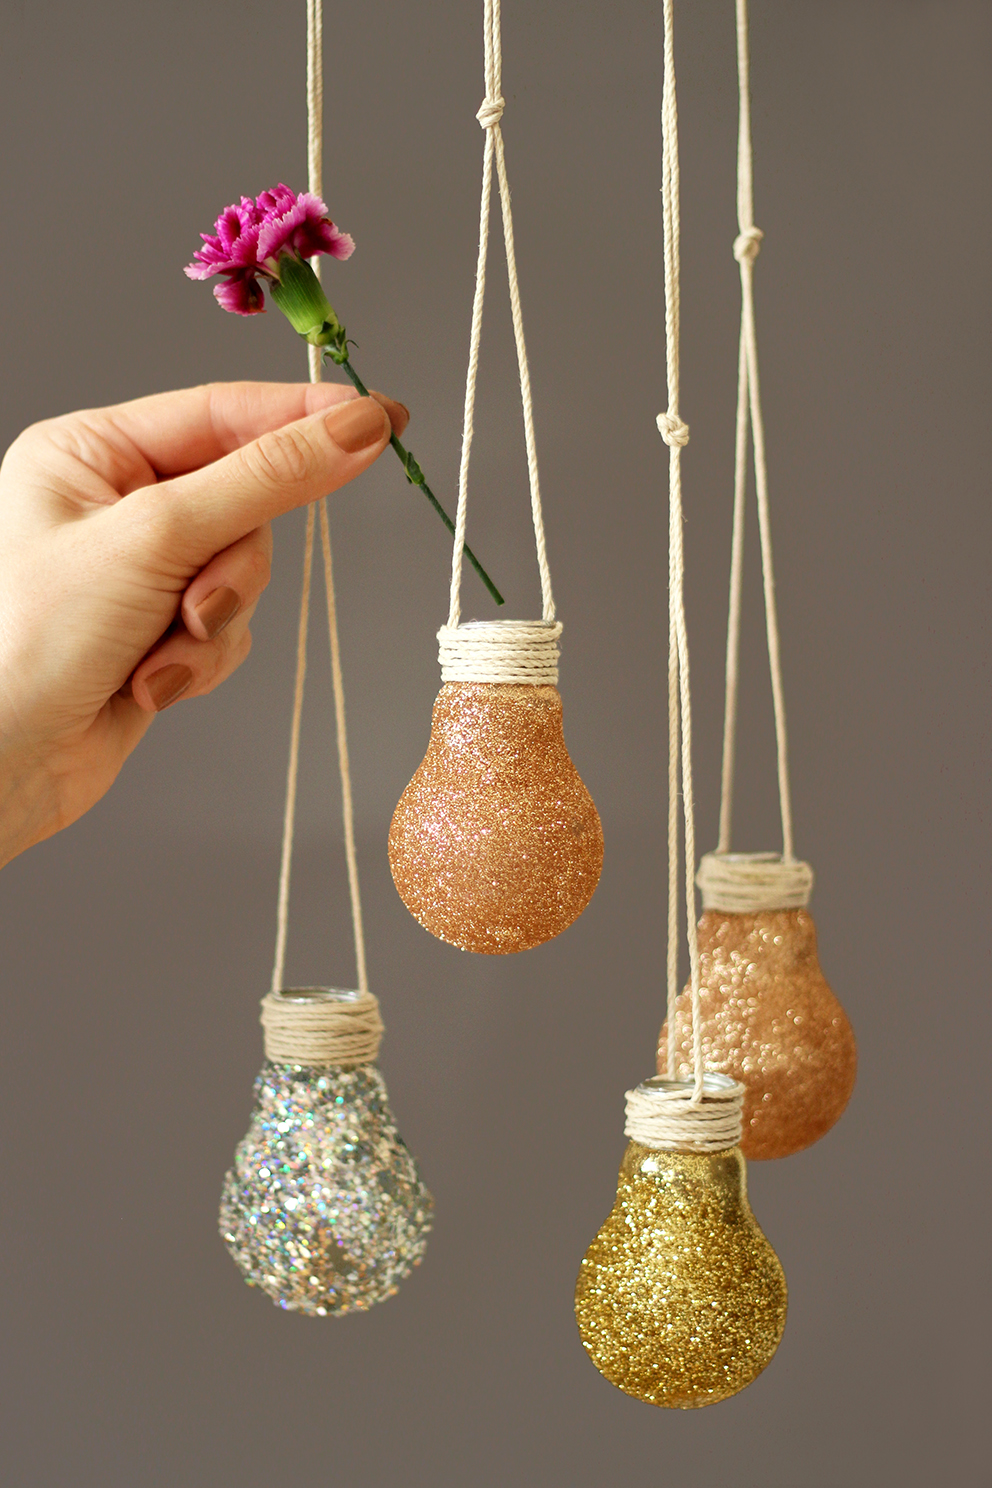 Diy ampoule vase blog mode lyon diy artlex - Diy decoration maison ...